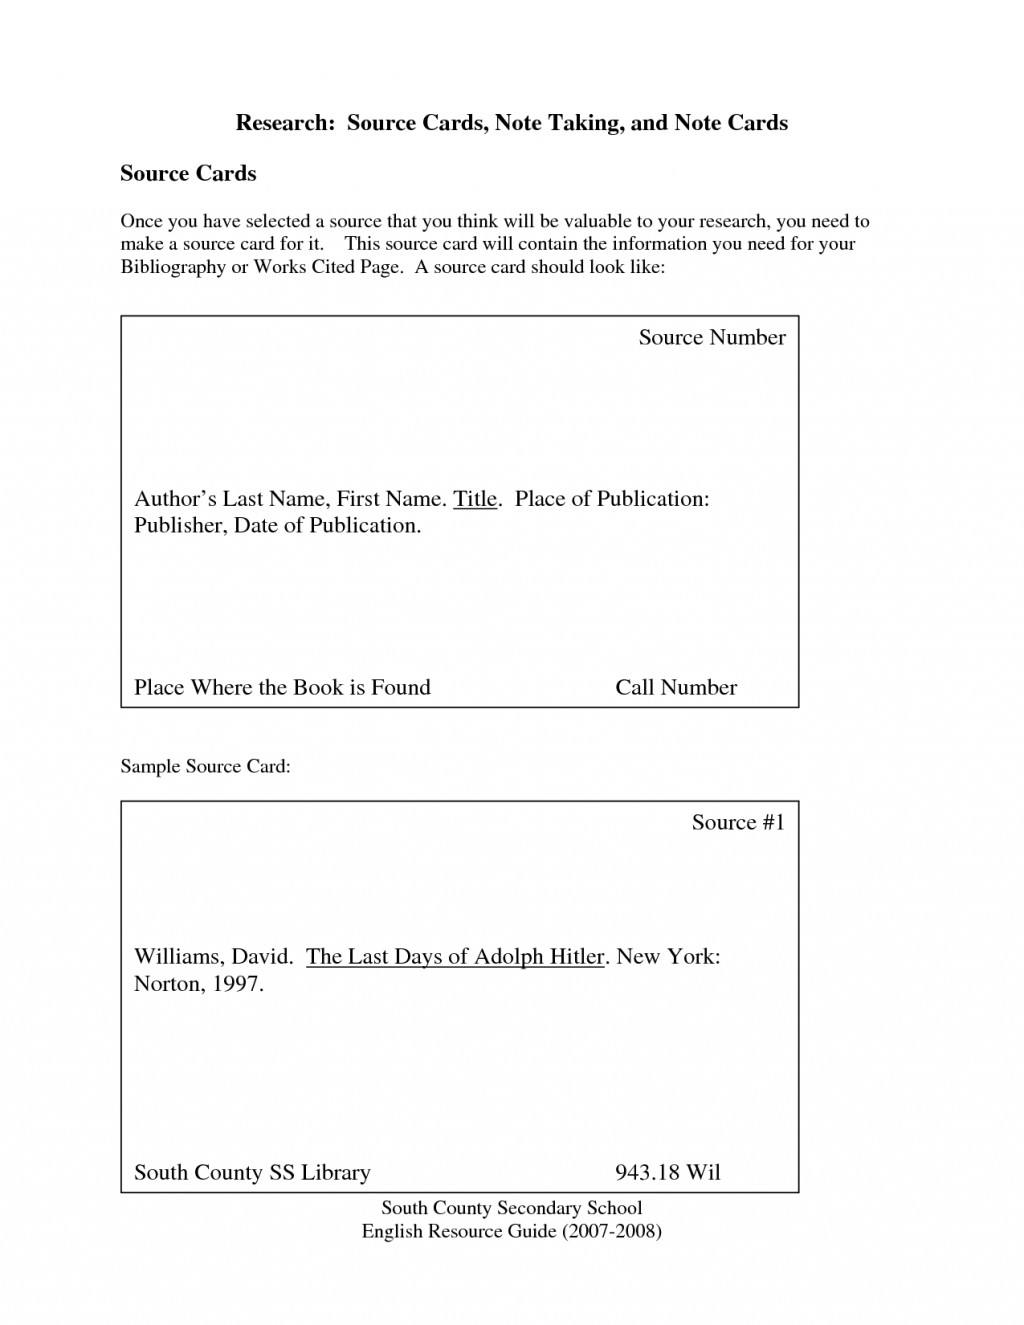 013 Research Paper Note Card Templates 442160 Cards Rare For Formatting Notecards Papers Mla Digital Large